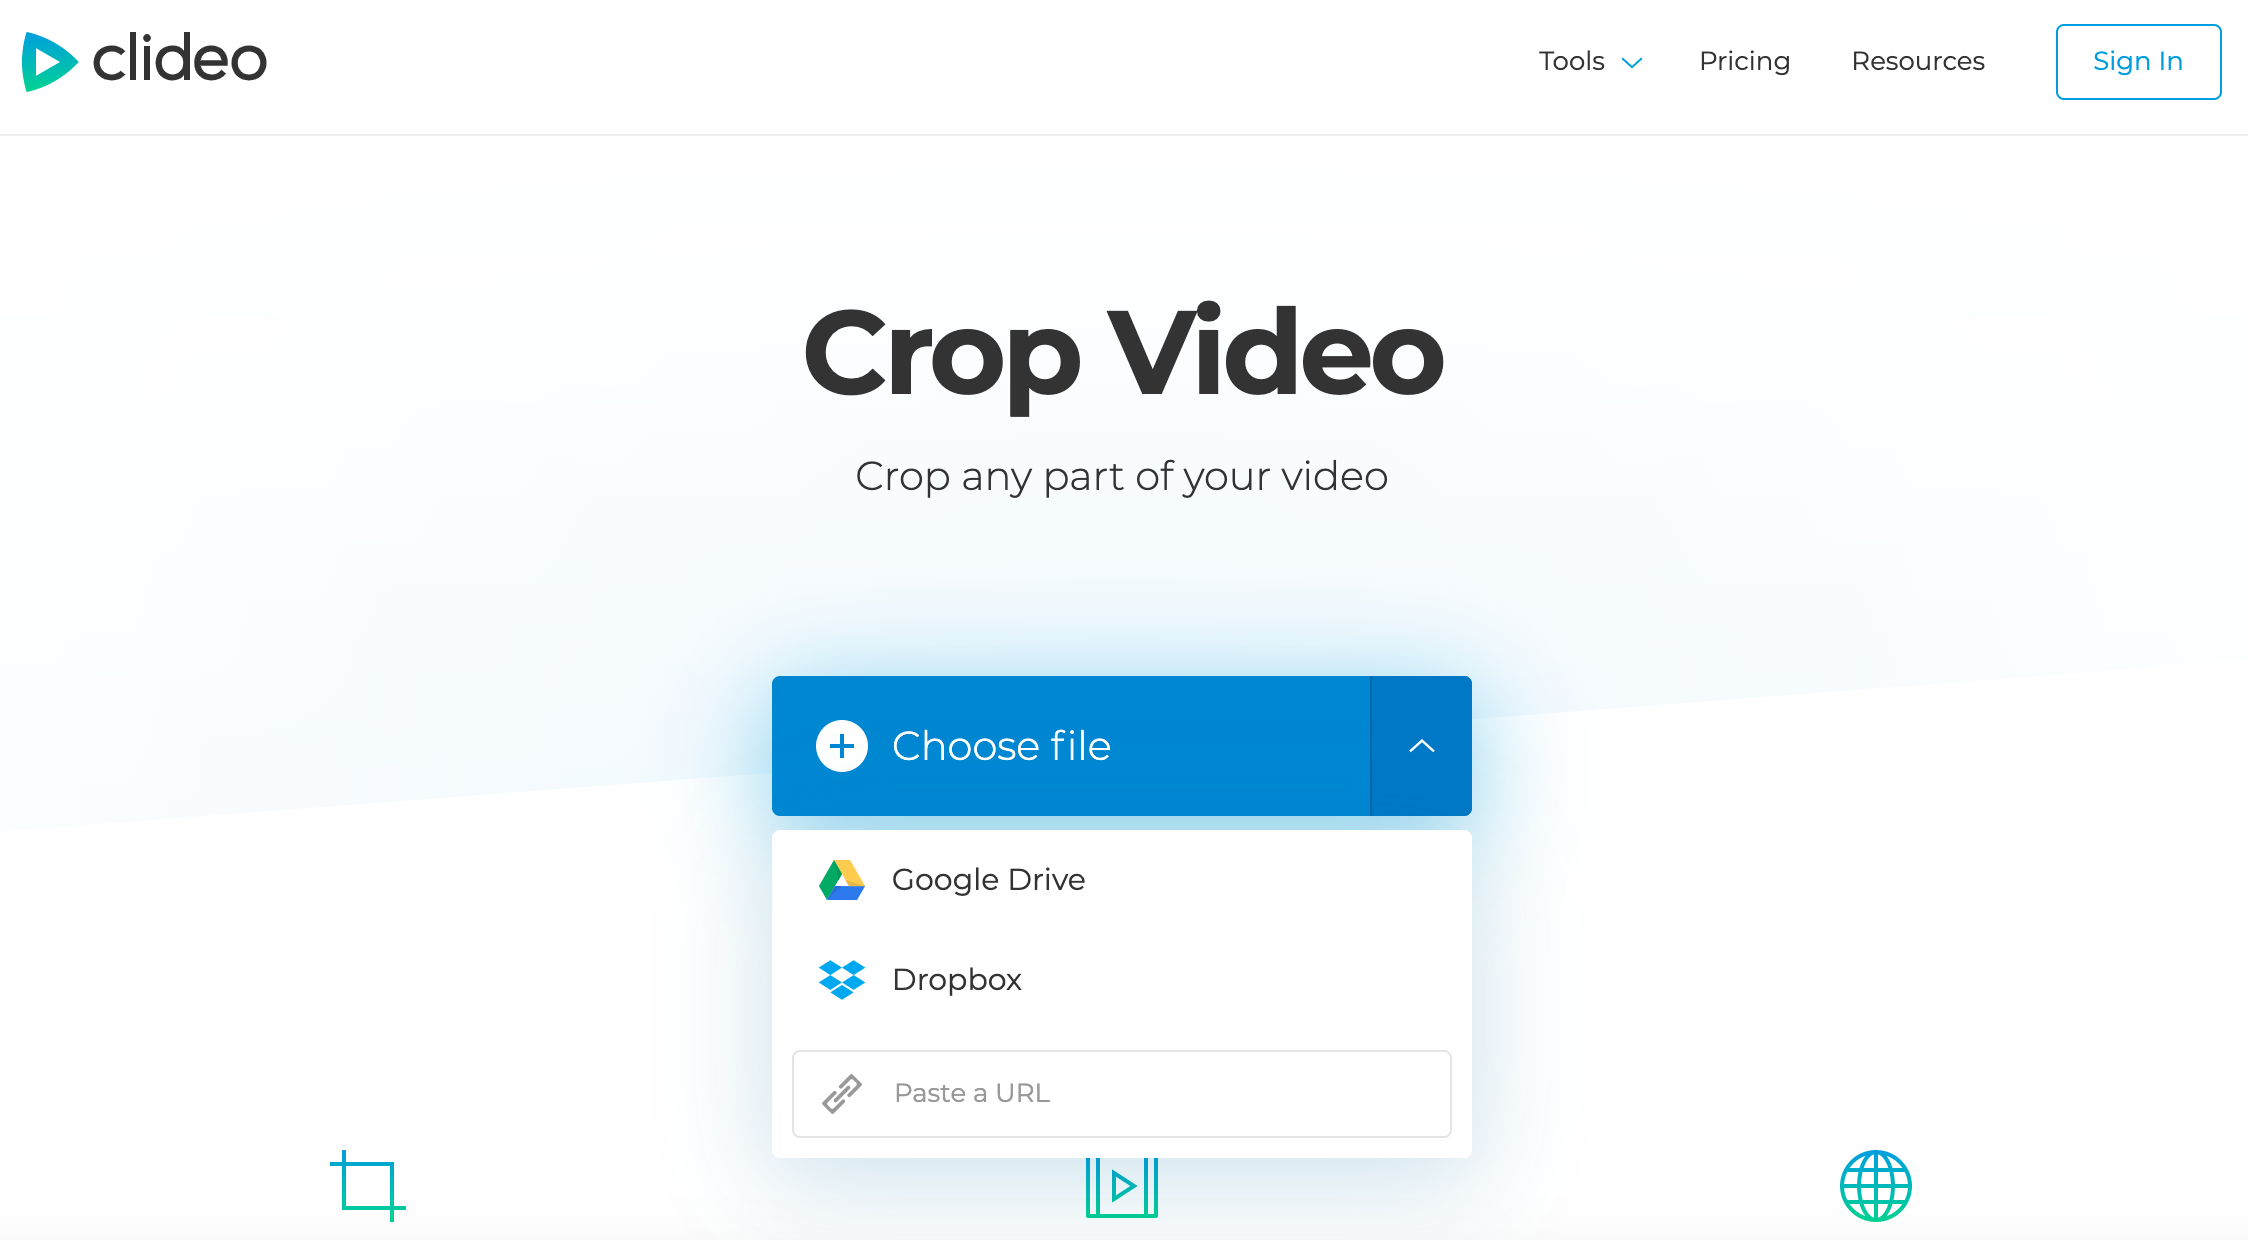 Upload a video to crop it for Instagram